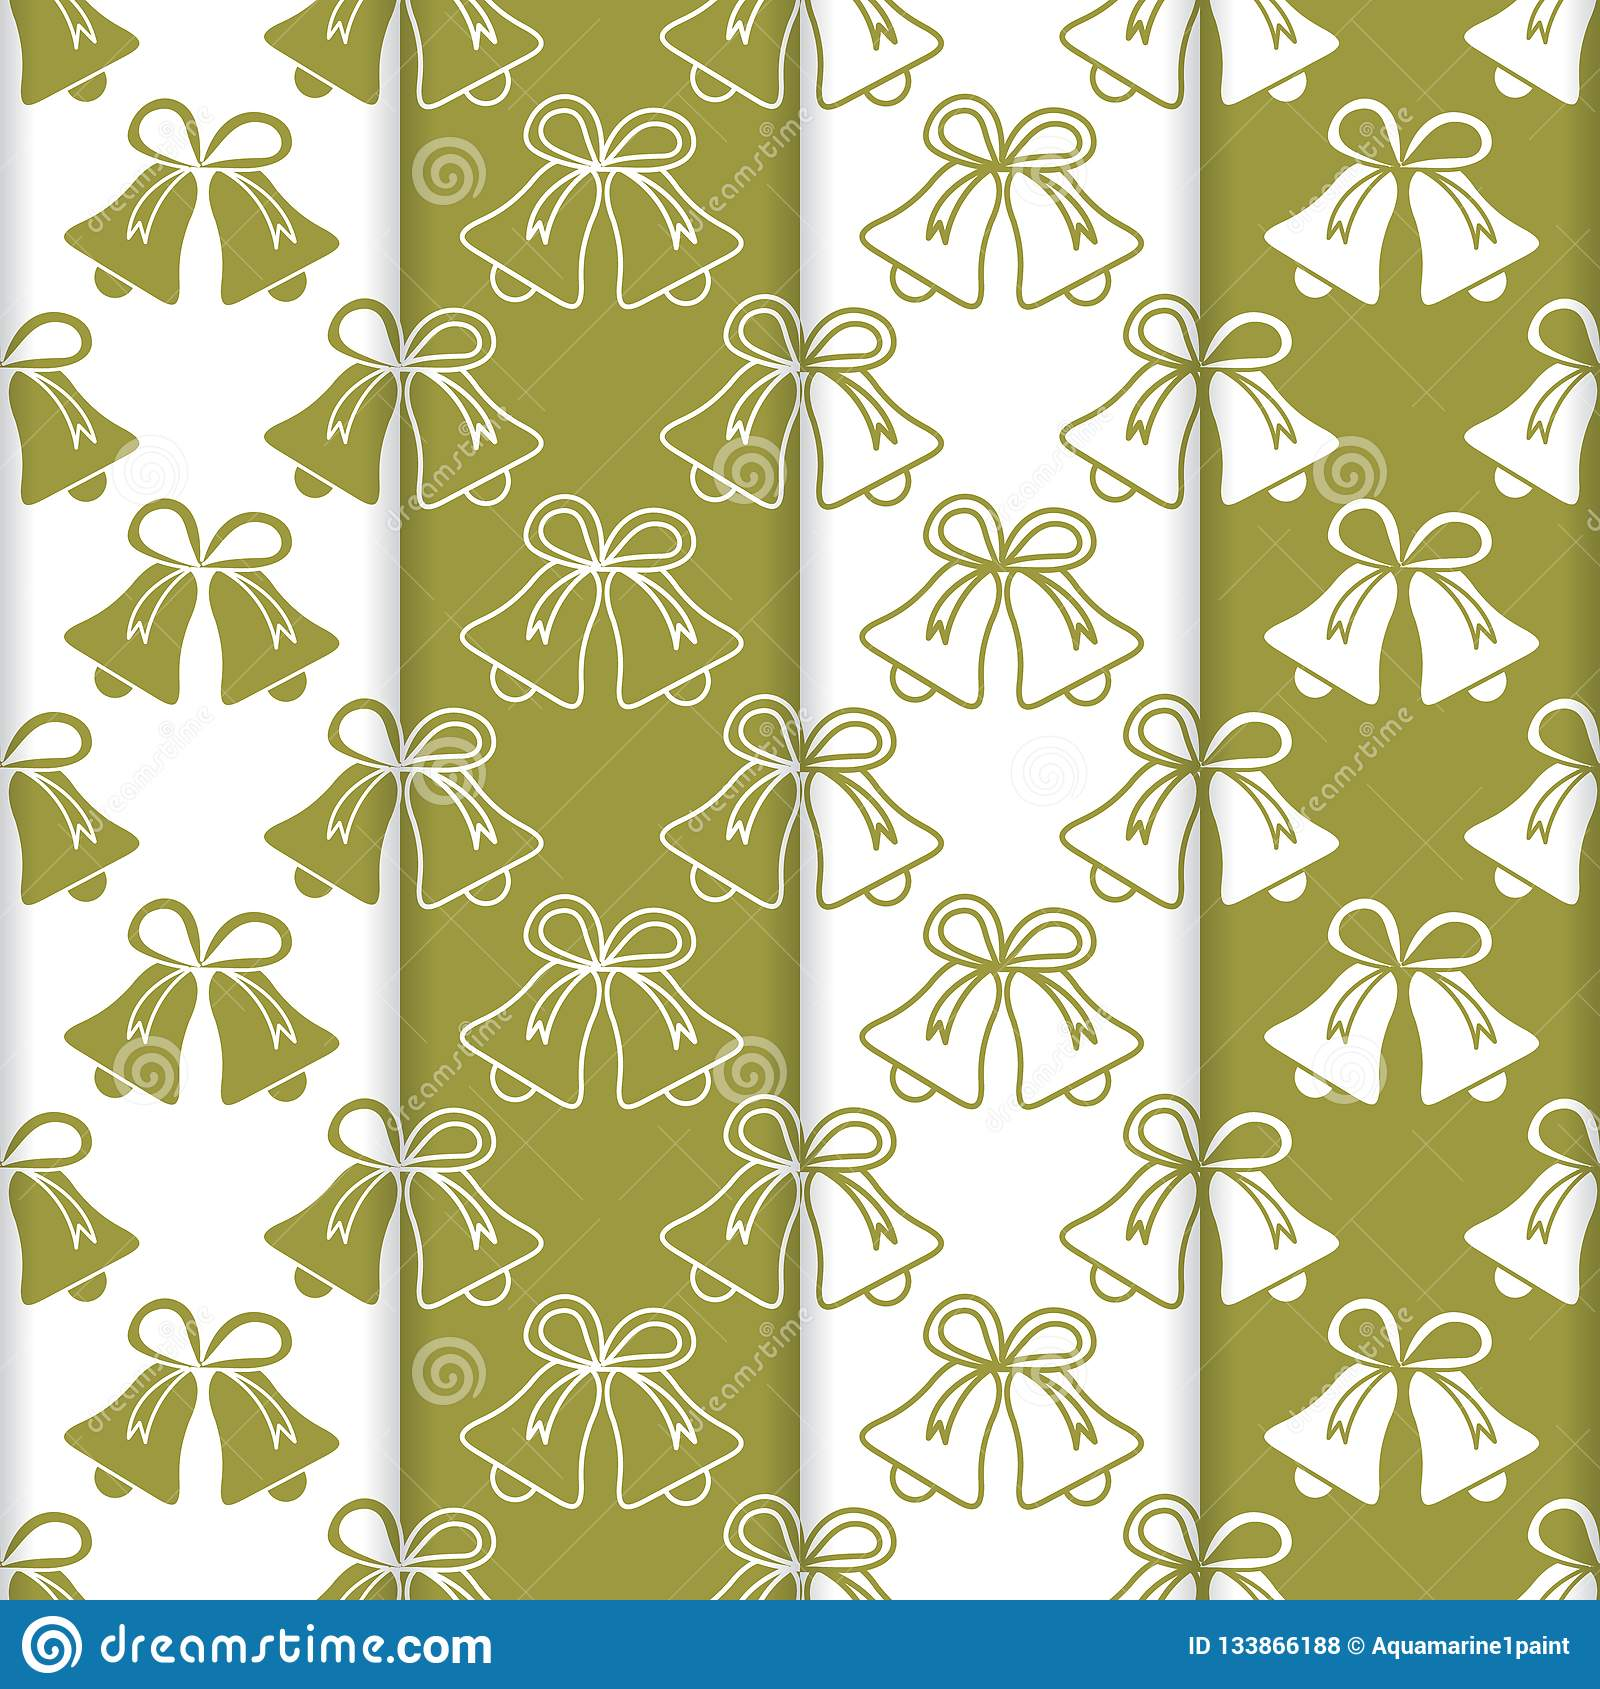 Christmas Fabric 2019.4 Christmas New Year 2019 Backgrounds With Bells Stock